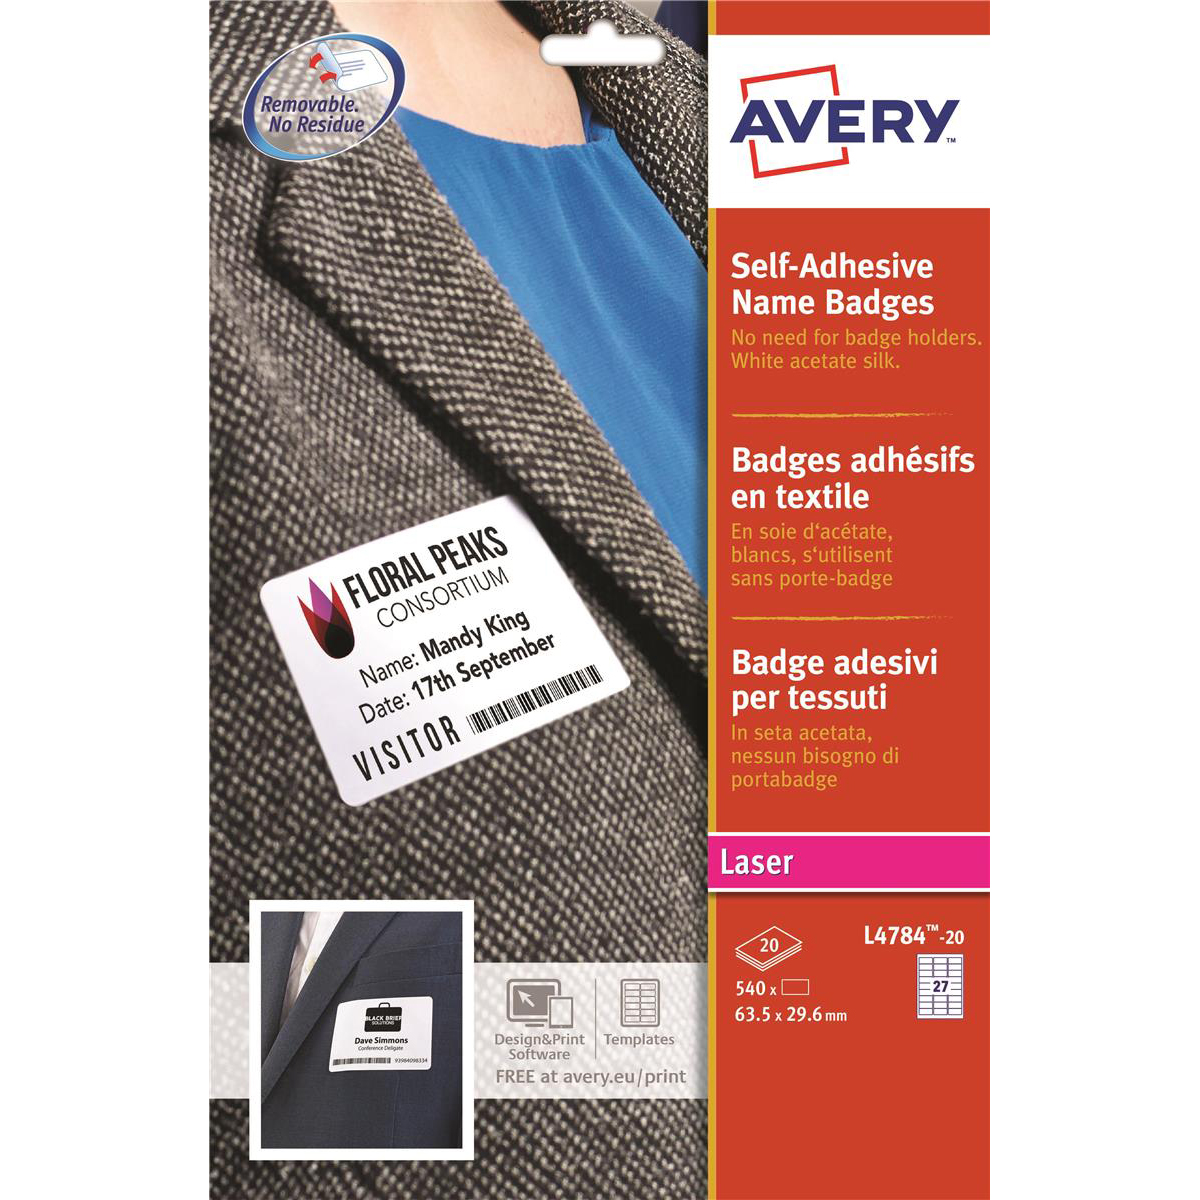 Avery Name Badge Labels Laser Self-adhesive 63.5x29.6mm White Ref L4784-20 540 Labels